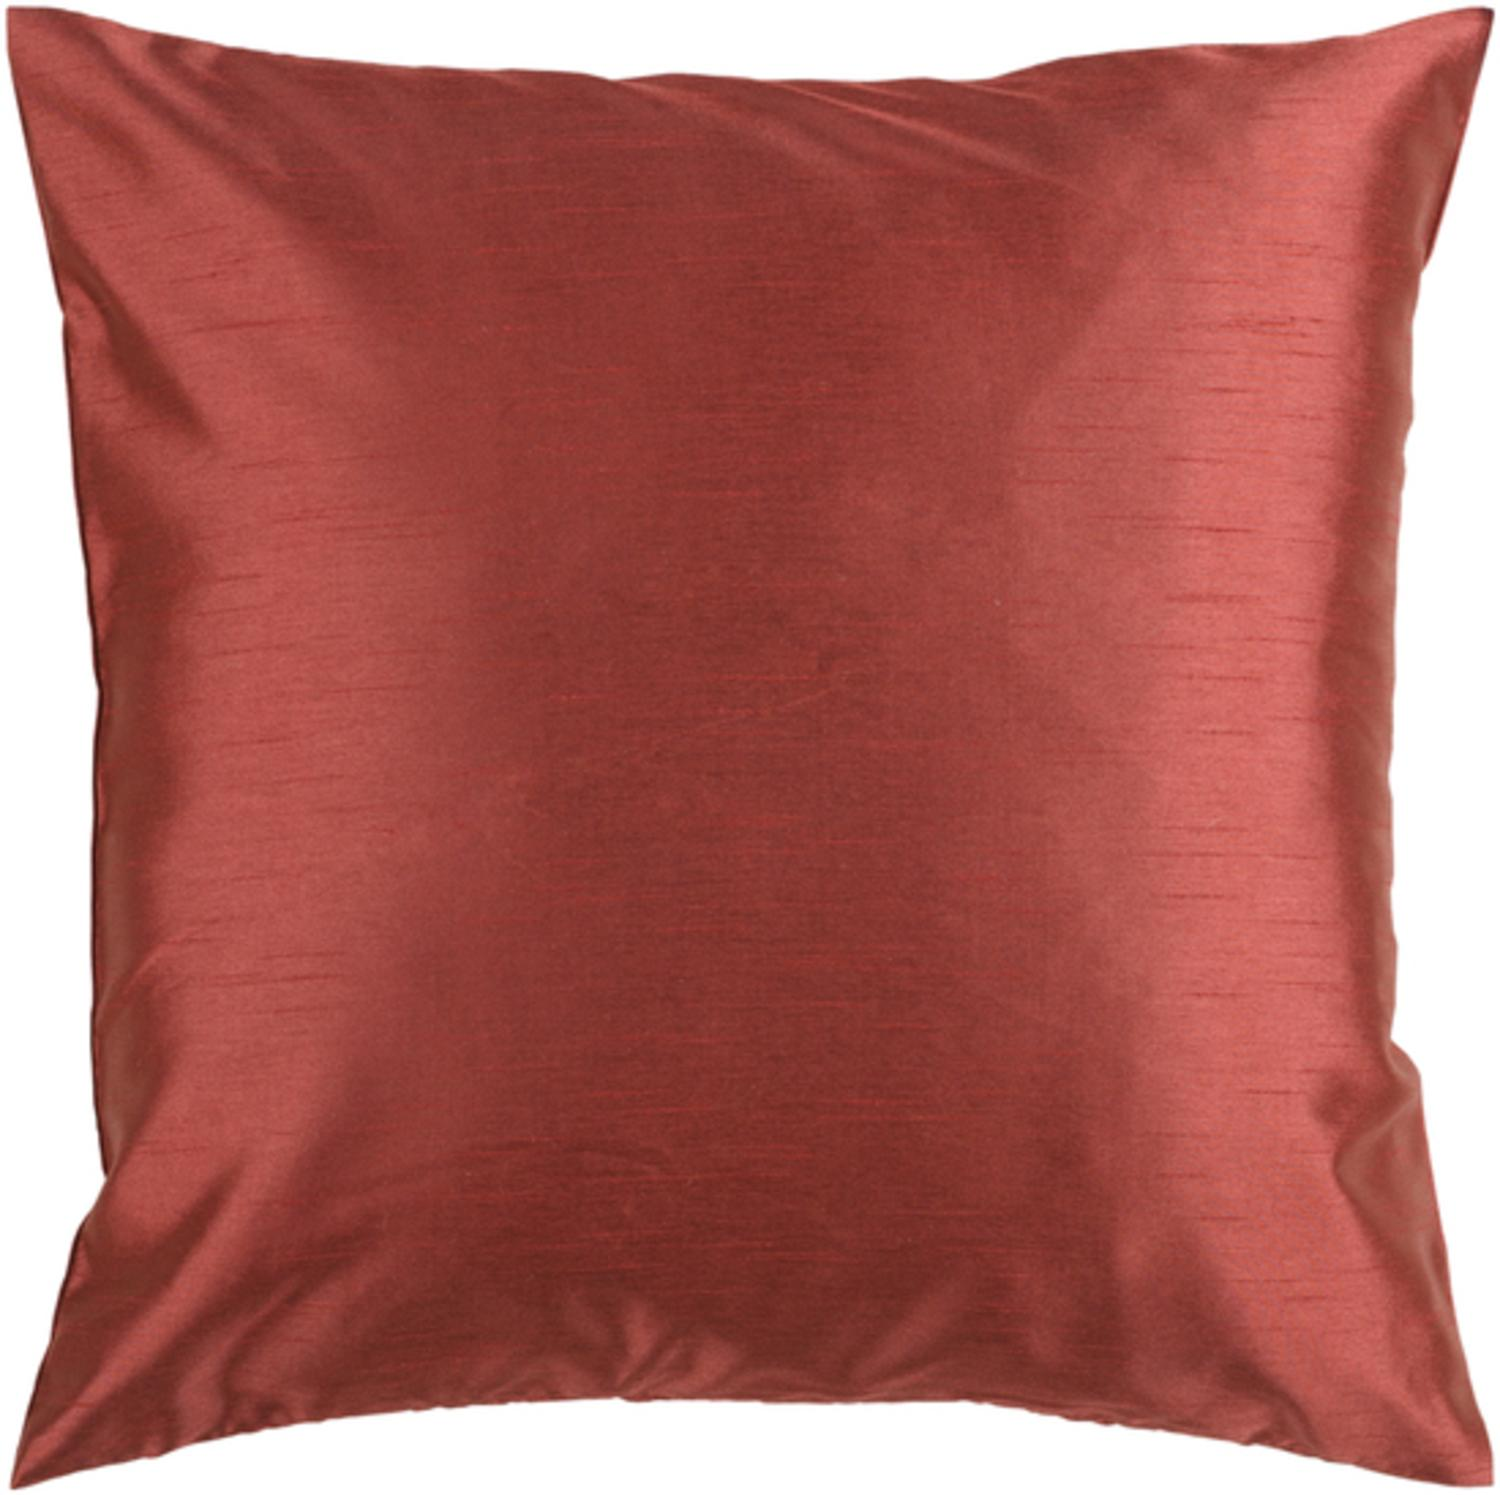 """22"""" Shiny Solid Rusty Red Clay Decorative Throw Pillow"""